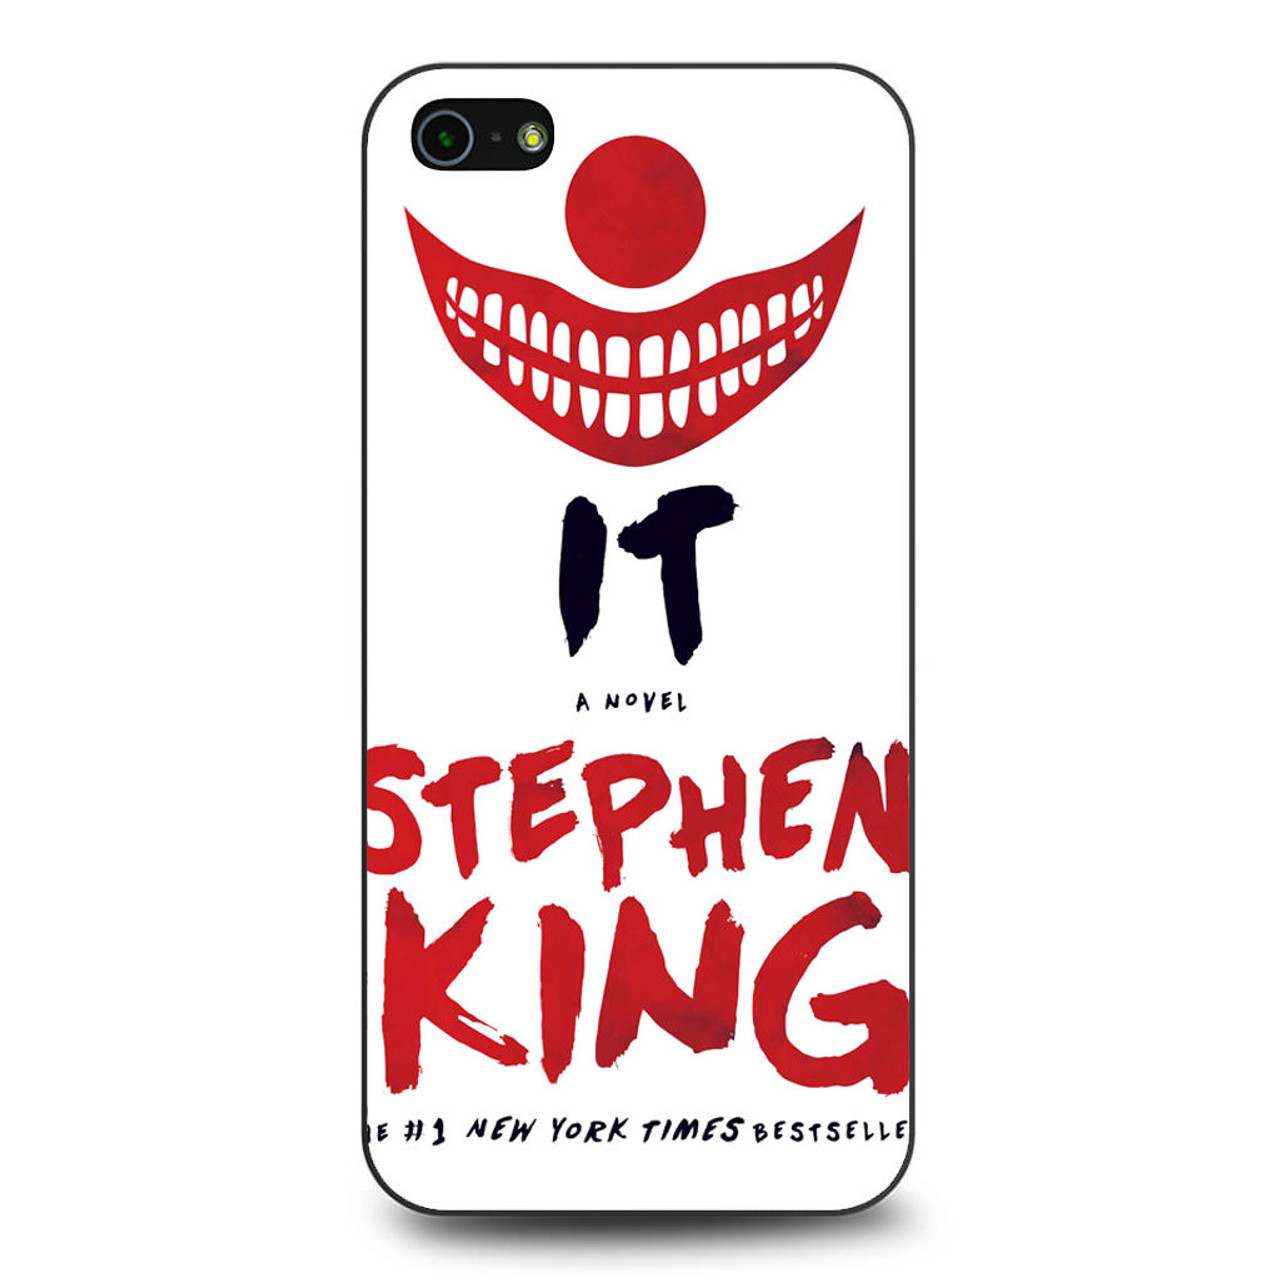 024583ce8c89 Stephen King IT Book Cover iPhone 5 5S SE Case - CASESHUNTER